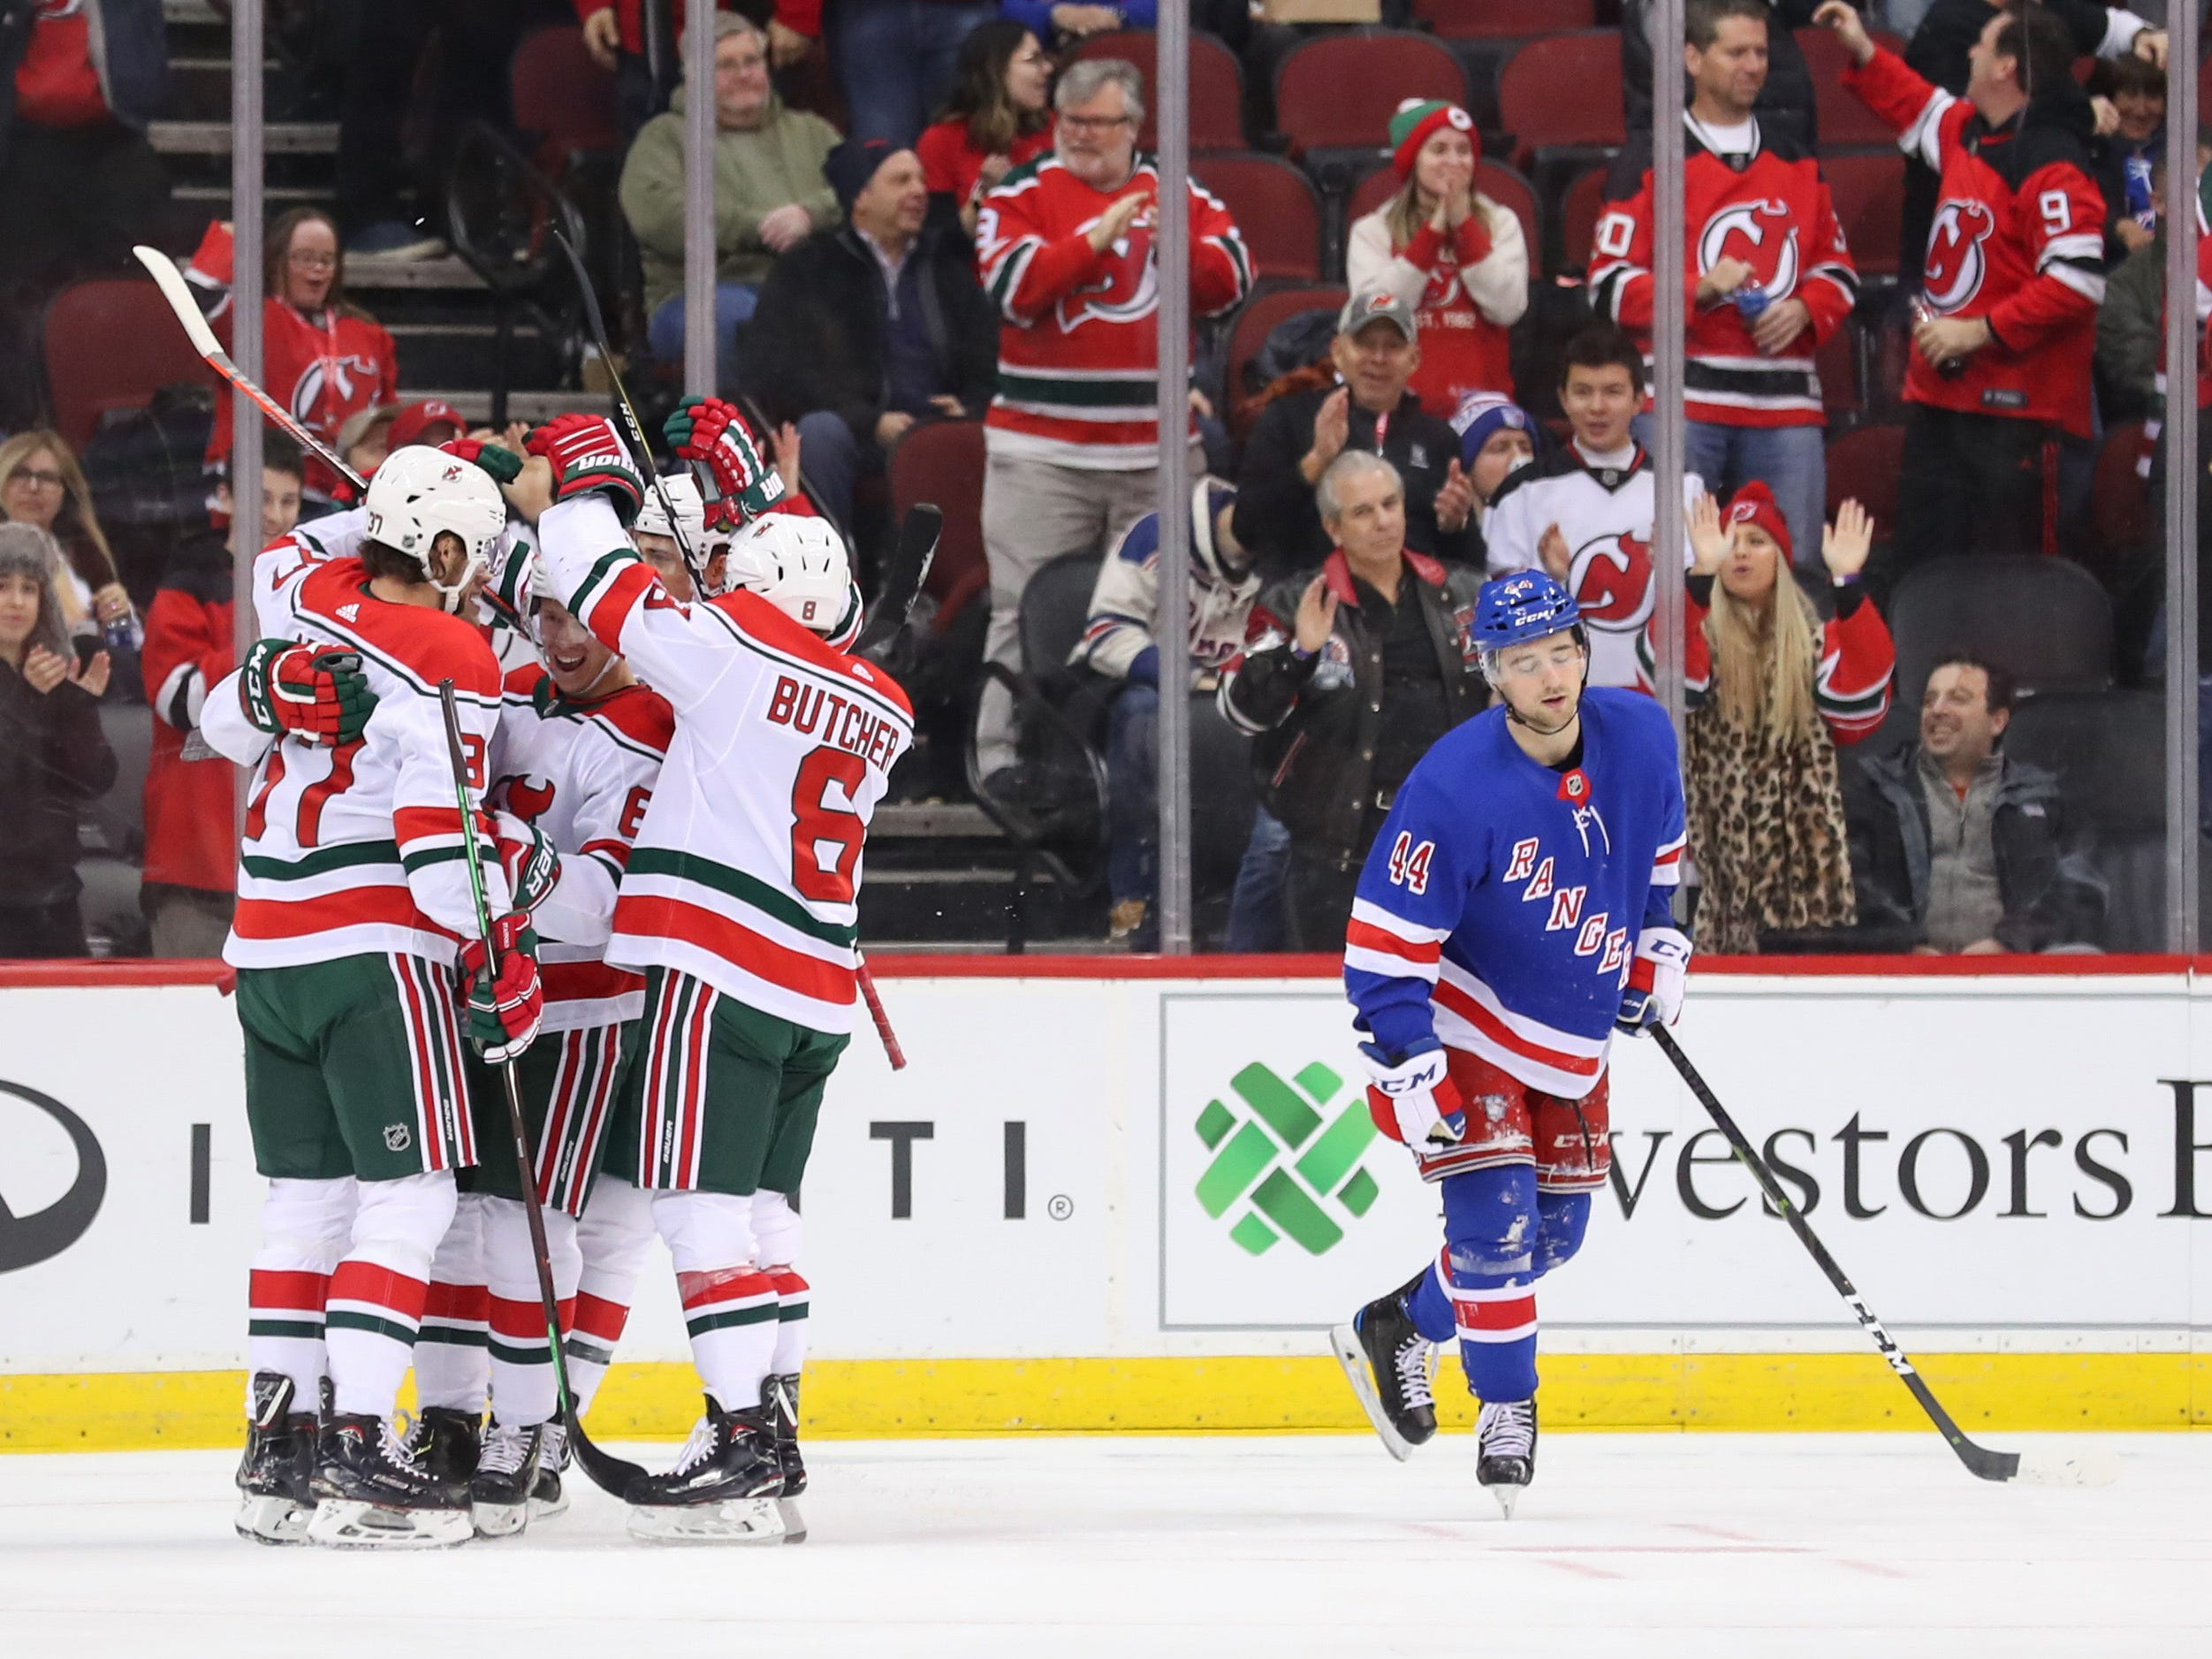 Jan 31, 2019; Newark, NJ, USA; The New Jersey Devils celebrate a goal by New Jersey Devils center Nico Hischier (13) during the first period of their game against the New York Rangers at Prudential Center.